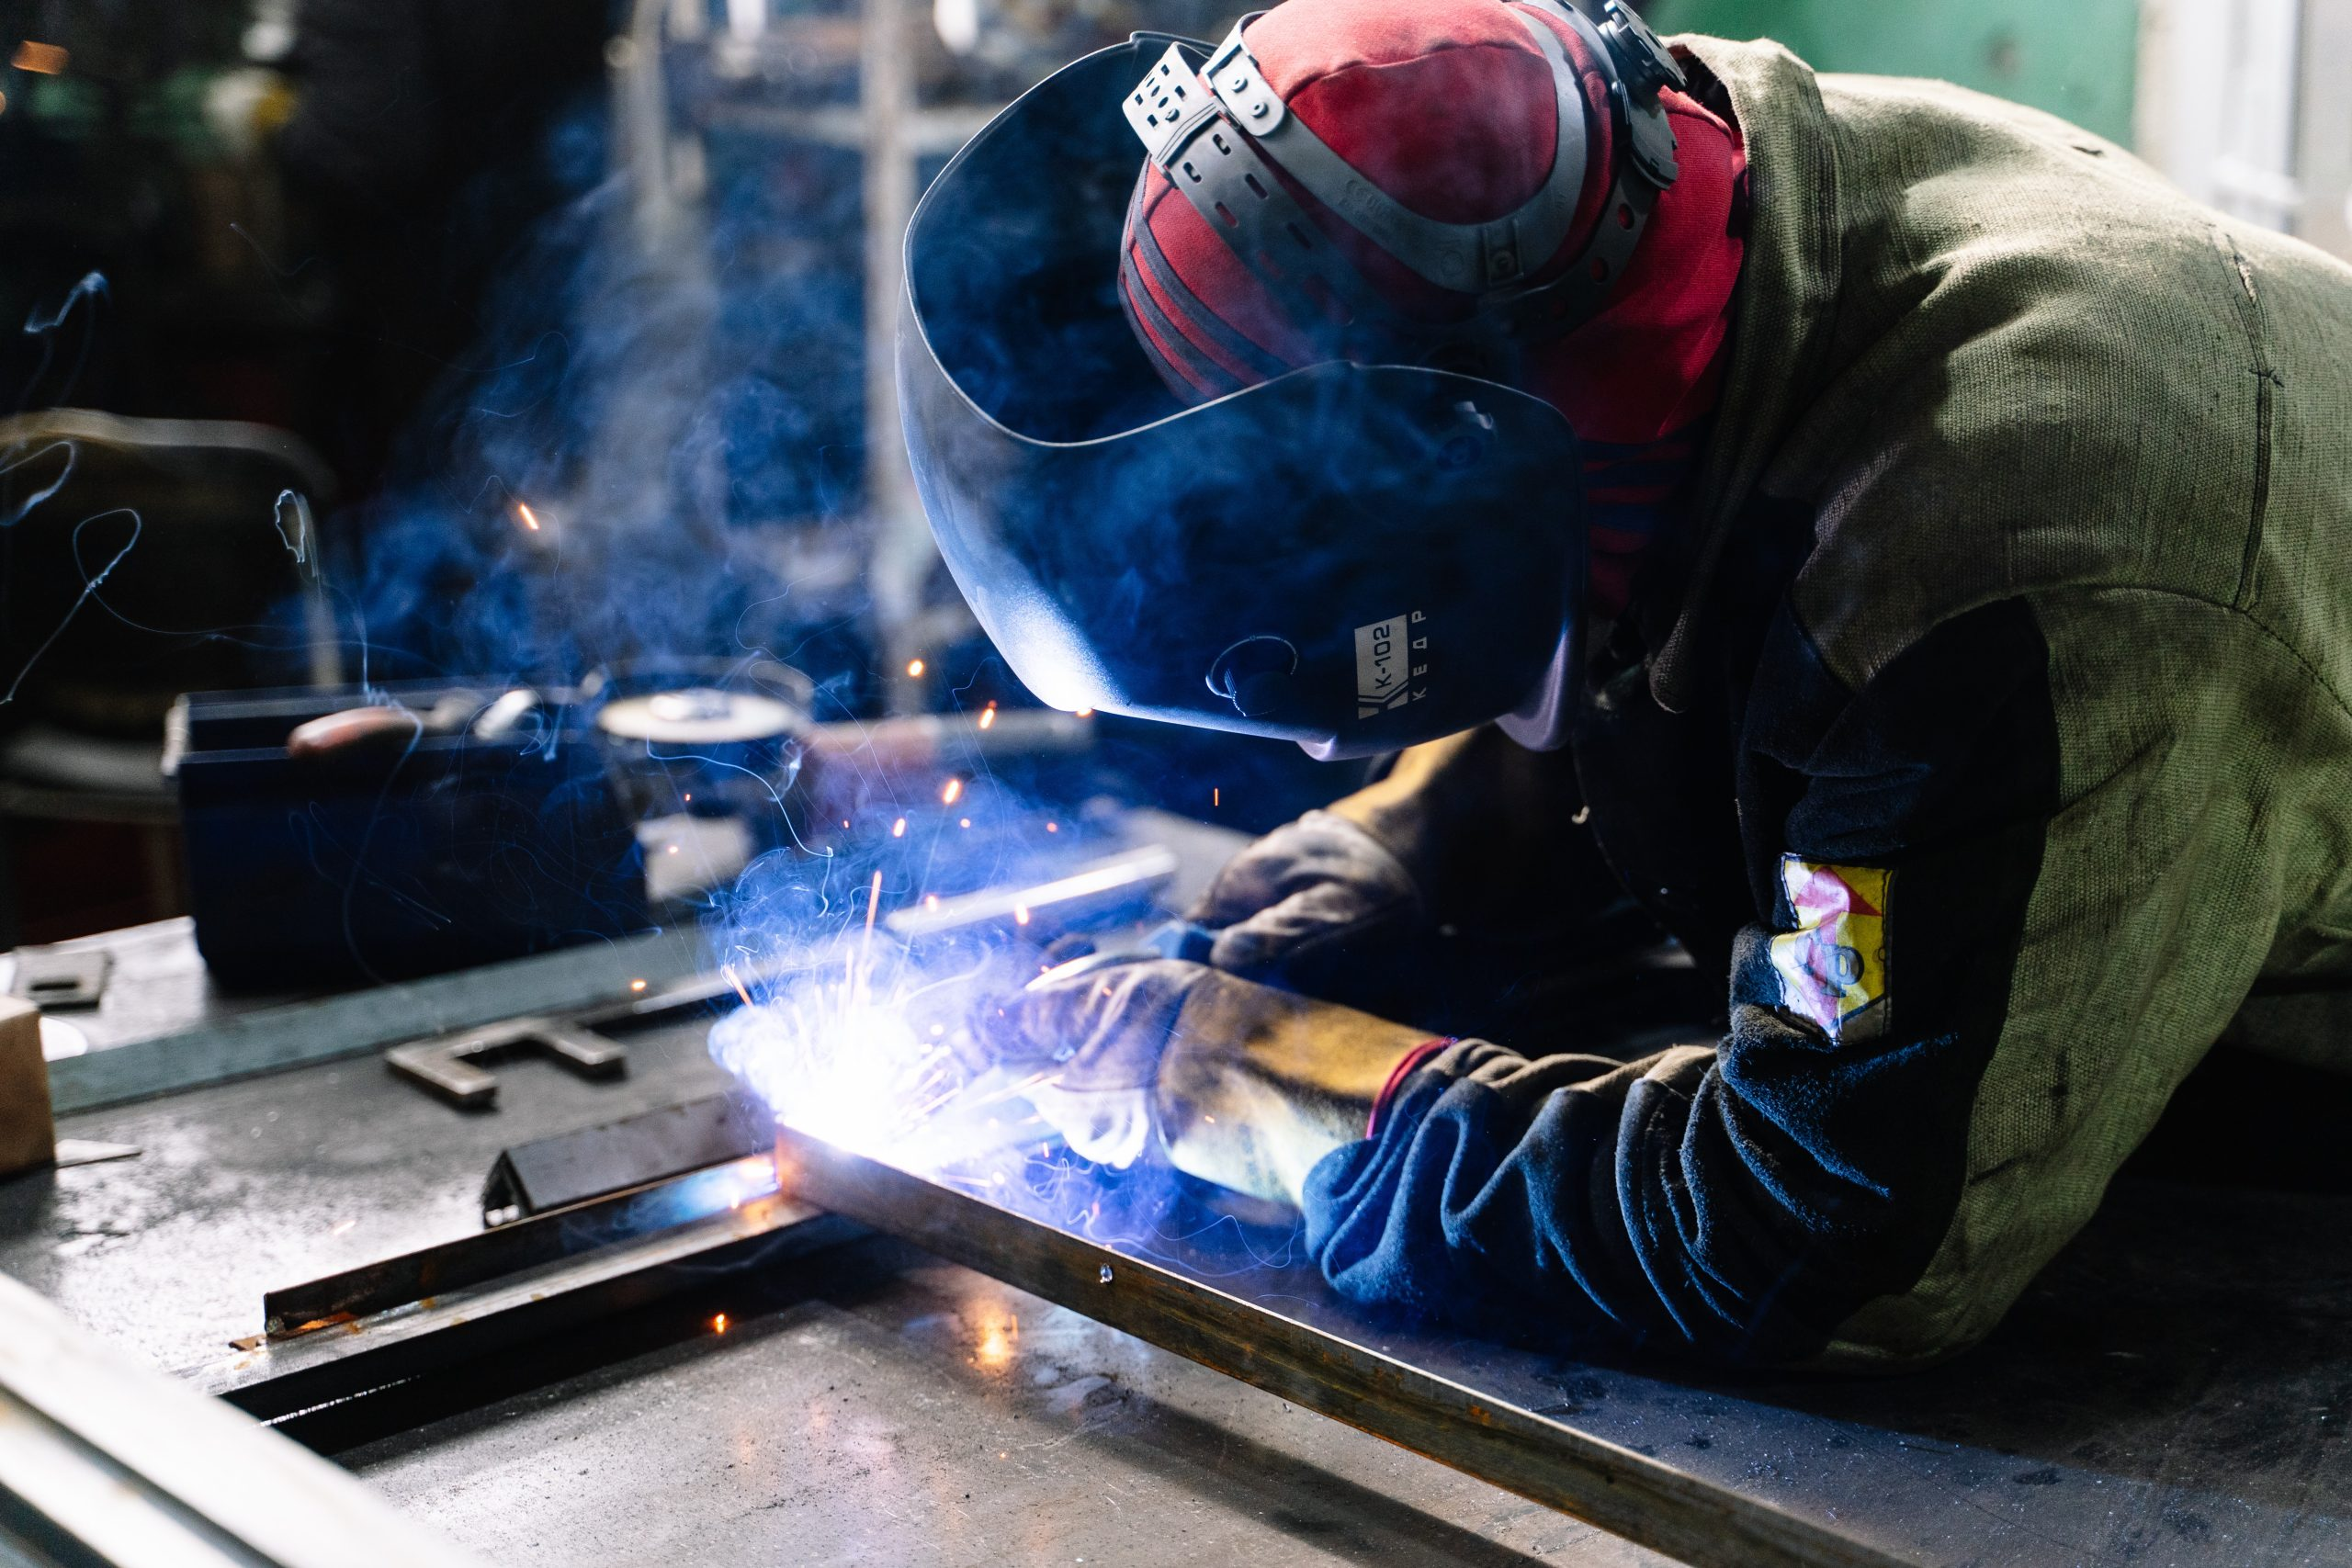 Photo: Member of workforce welding metal in factory workshop.